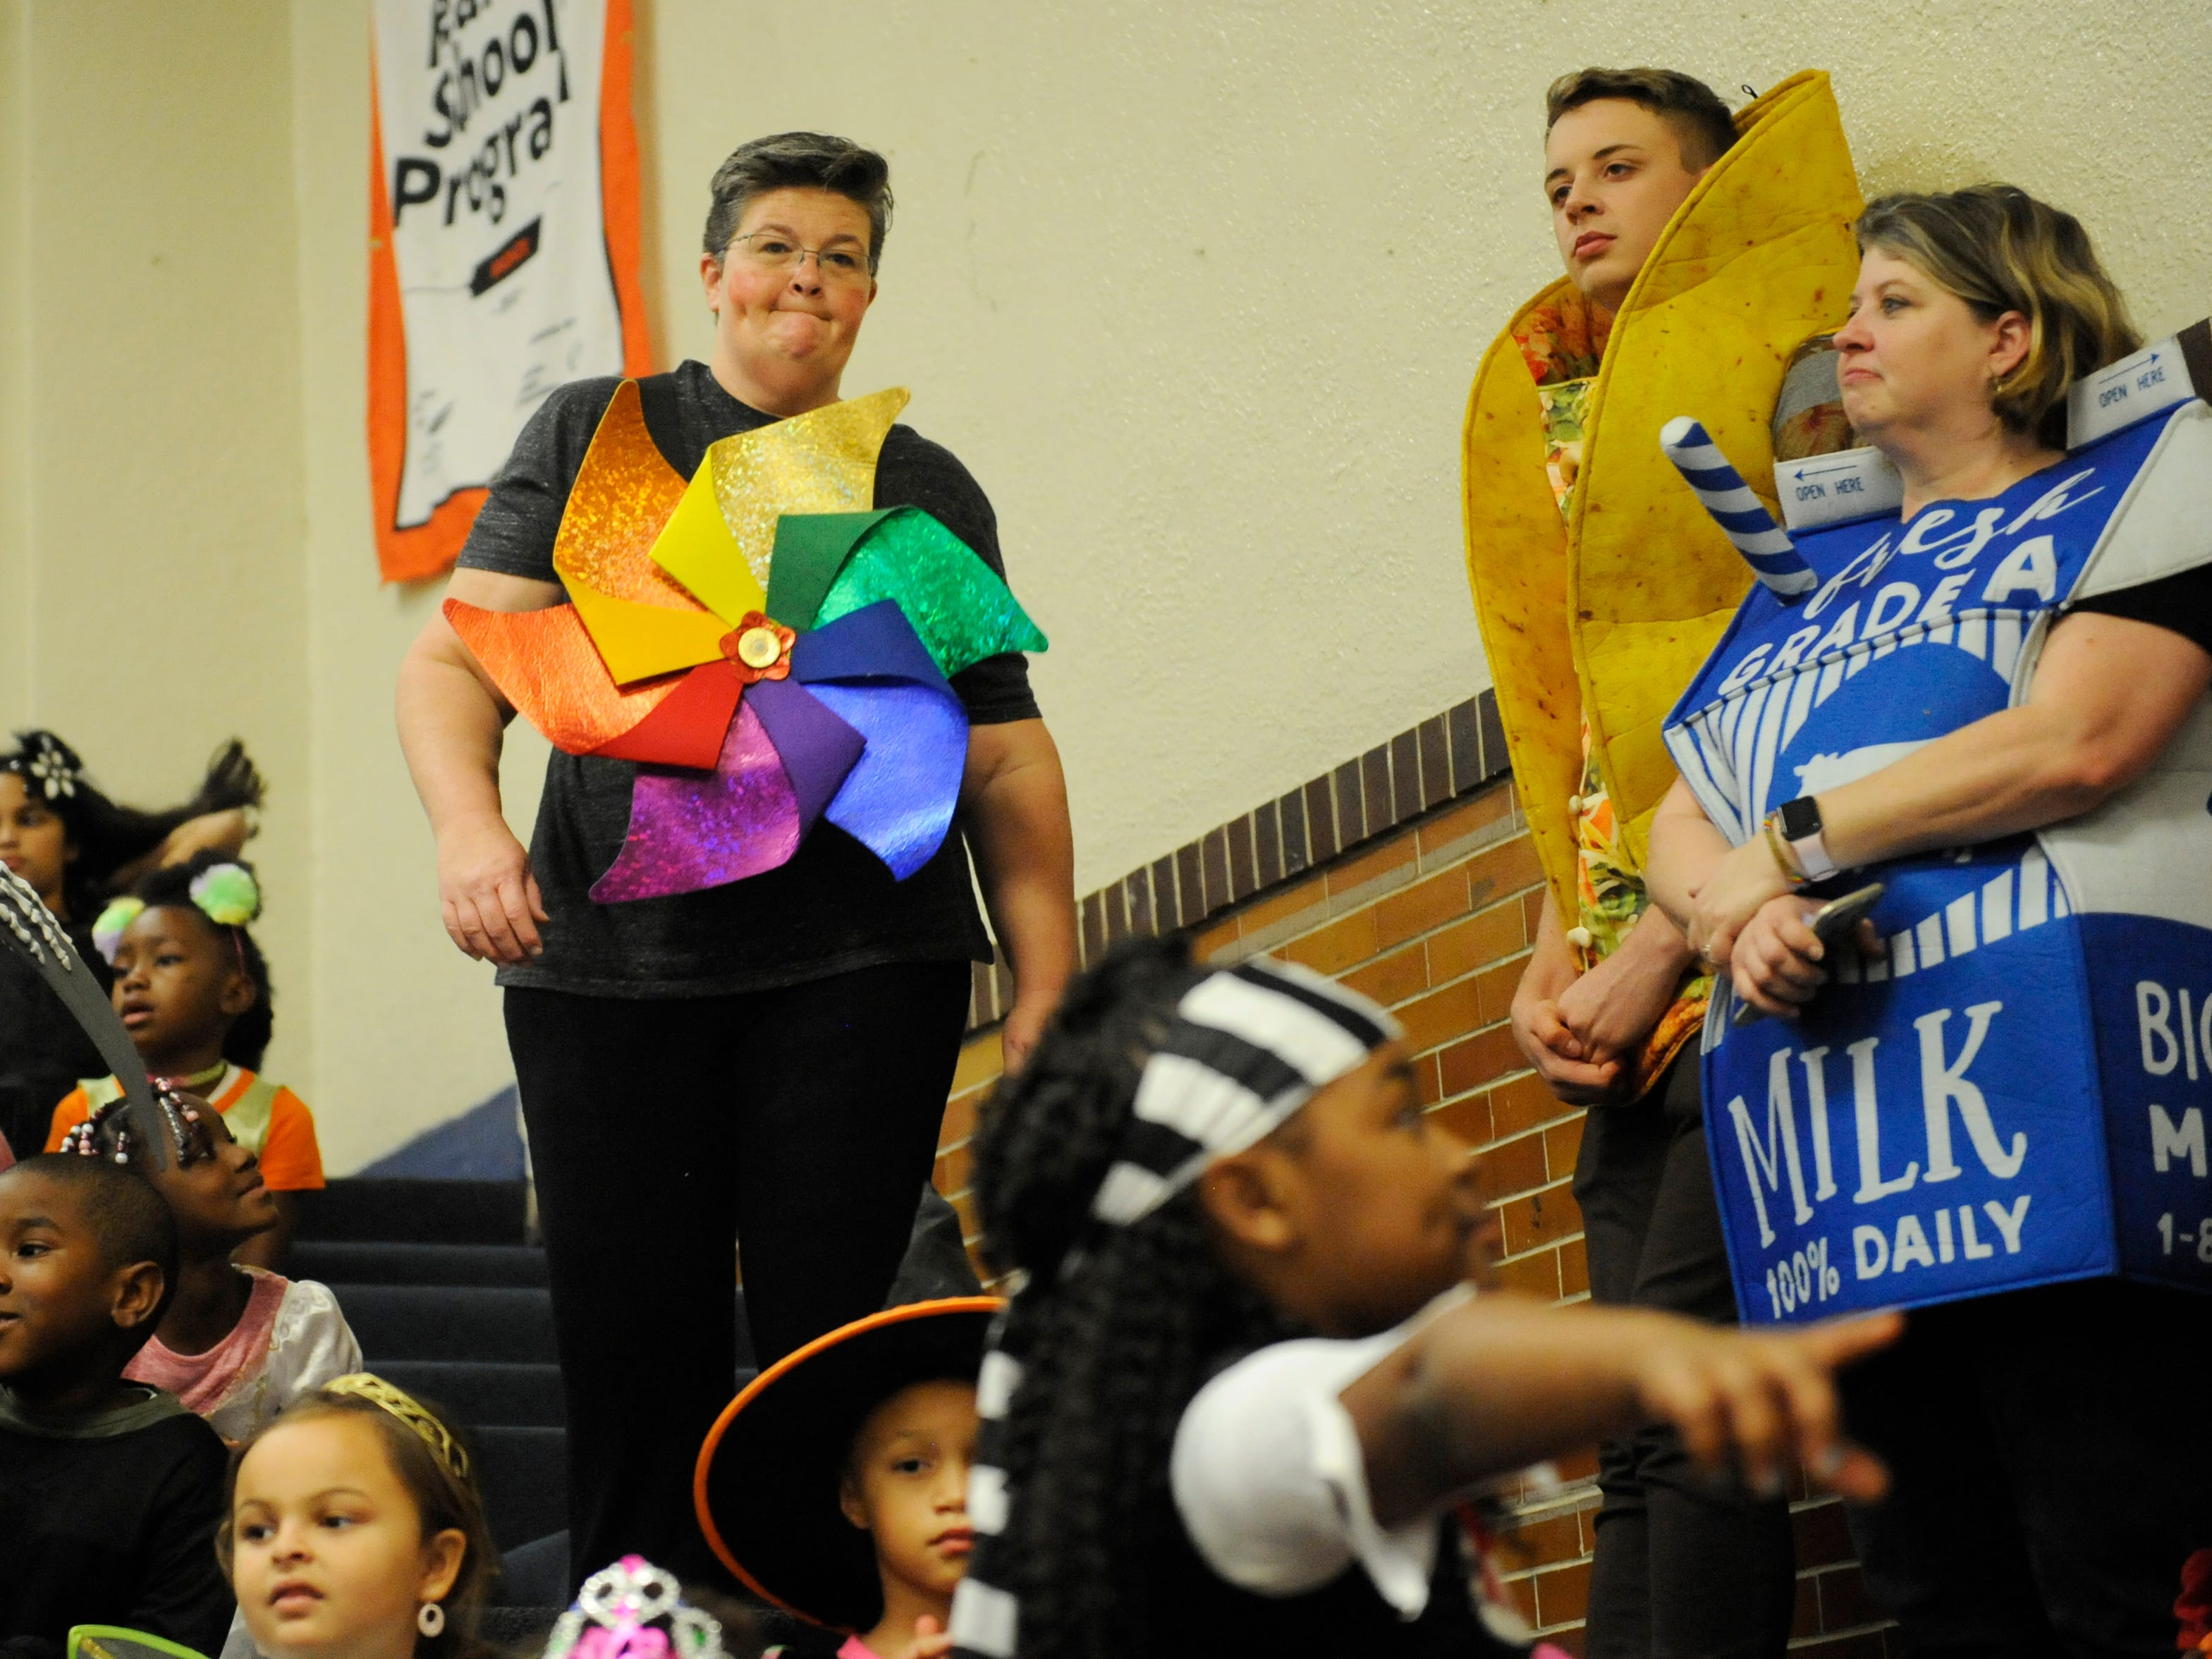 Students at R.M. Bacon Elementary in Millville celebrated Halloween with a special costume parade in the school's gymnasium on Wednesday, October 31, 2018.